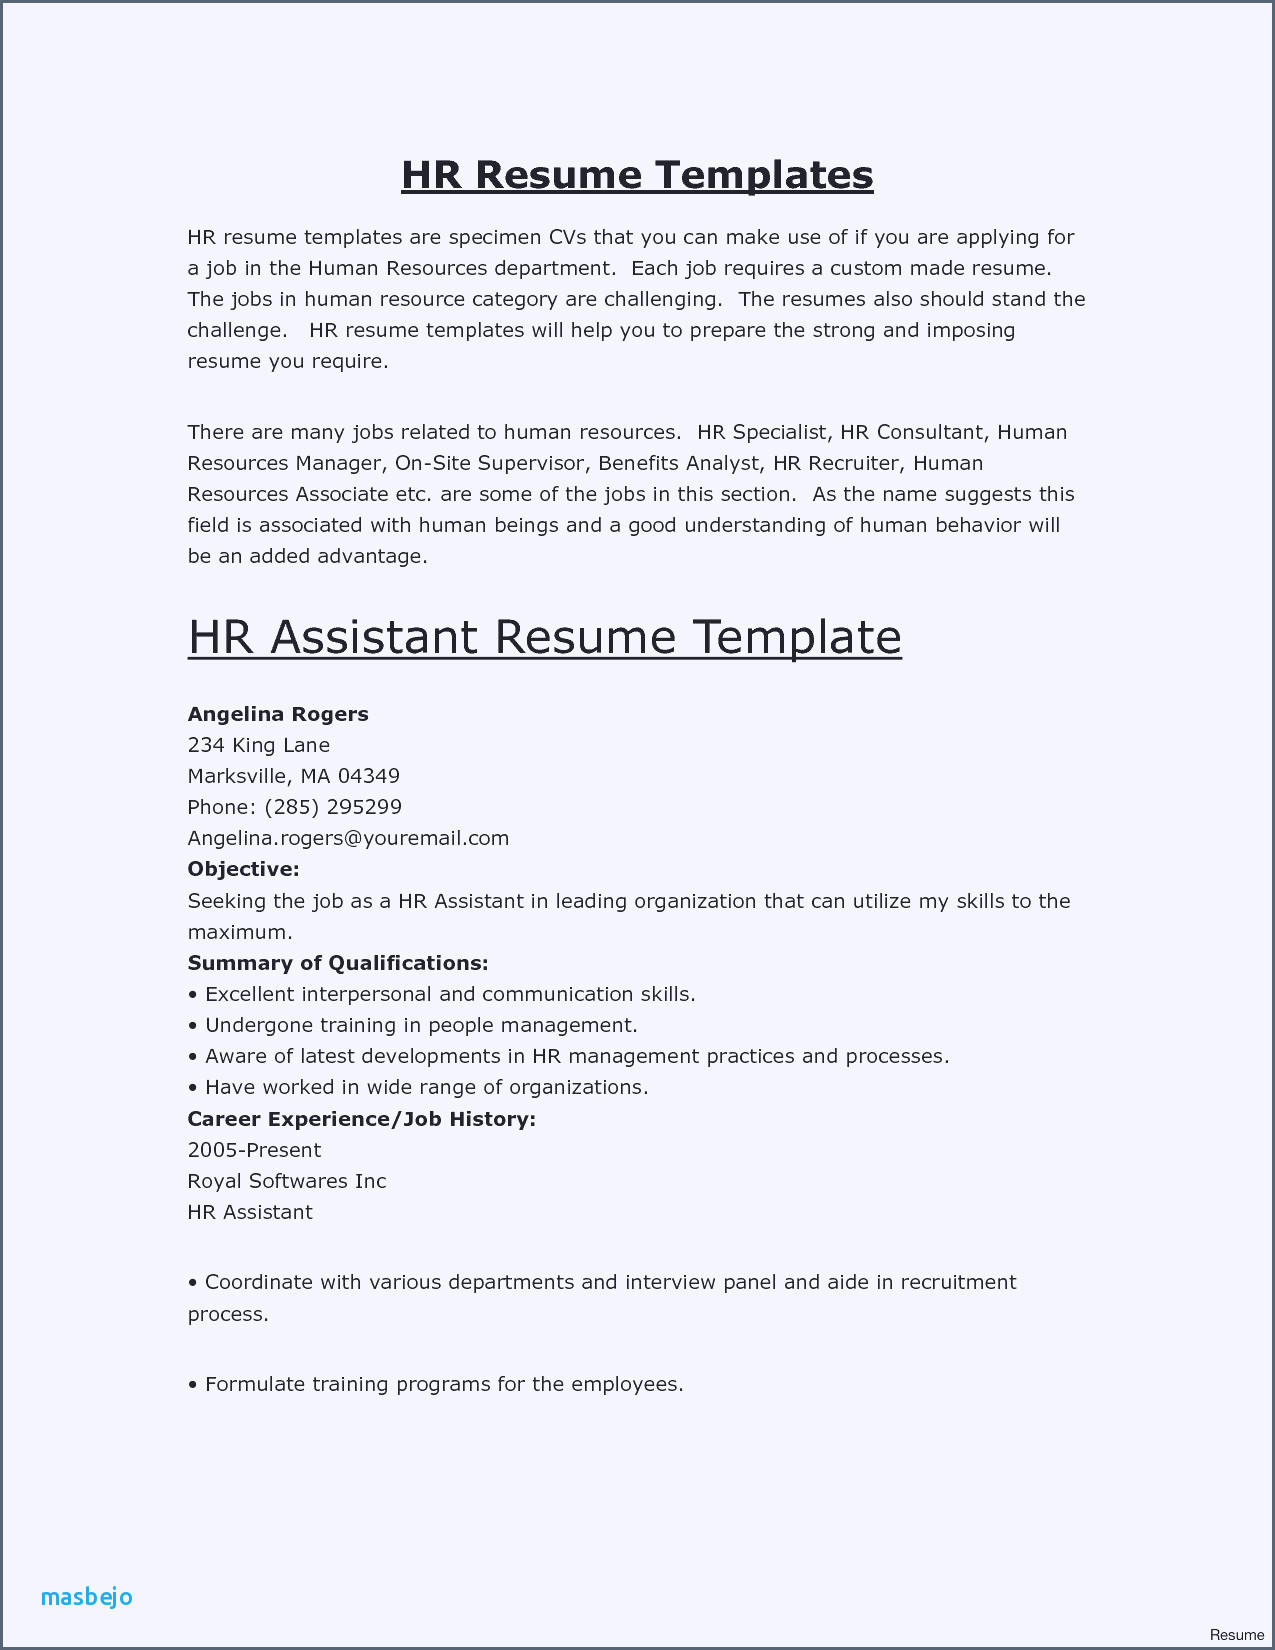 Hair Stylist Resume Template Beautiful Resume Examples For Hairstylist Awesome How Can I Do A Resume Best